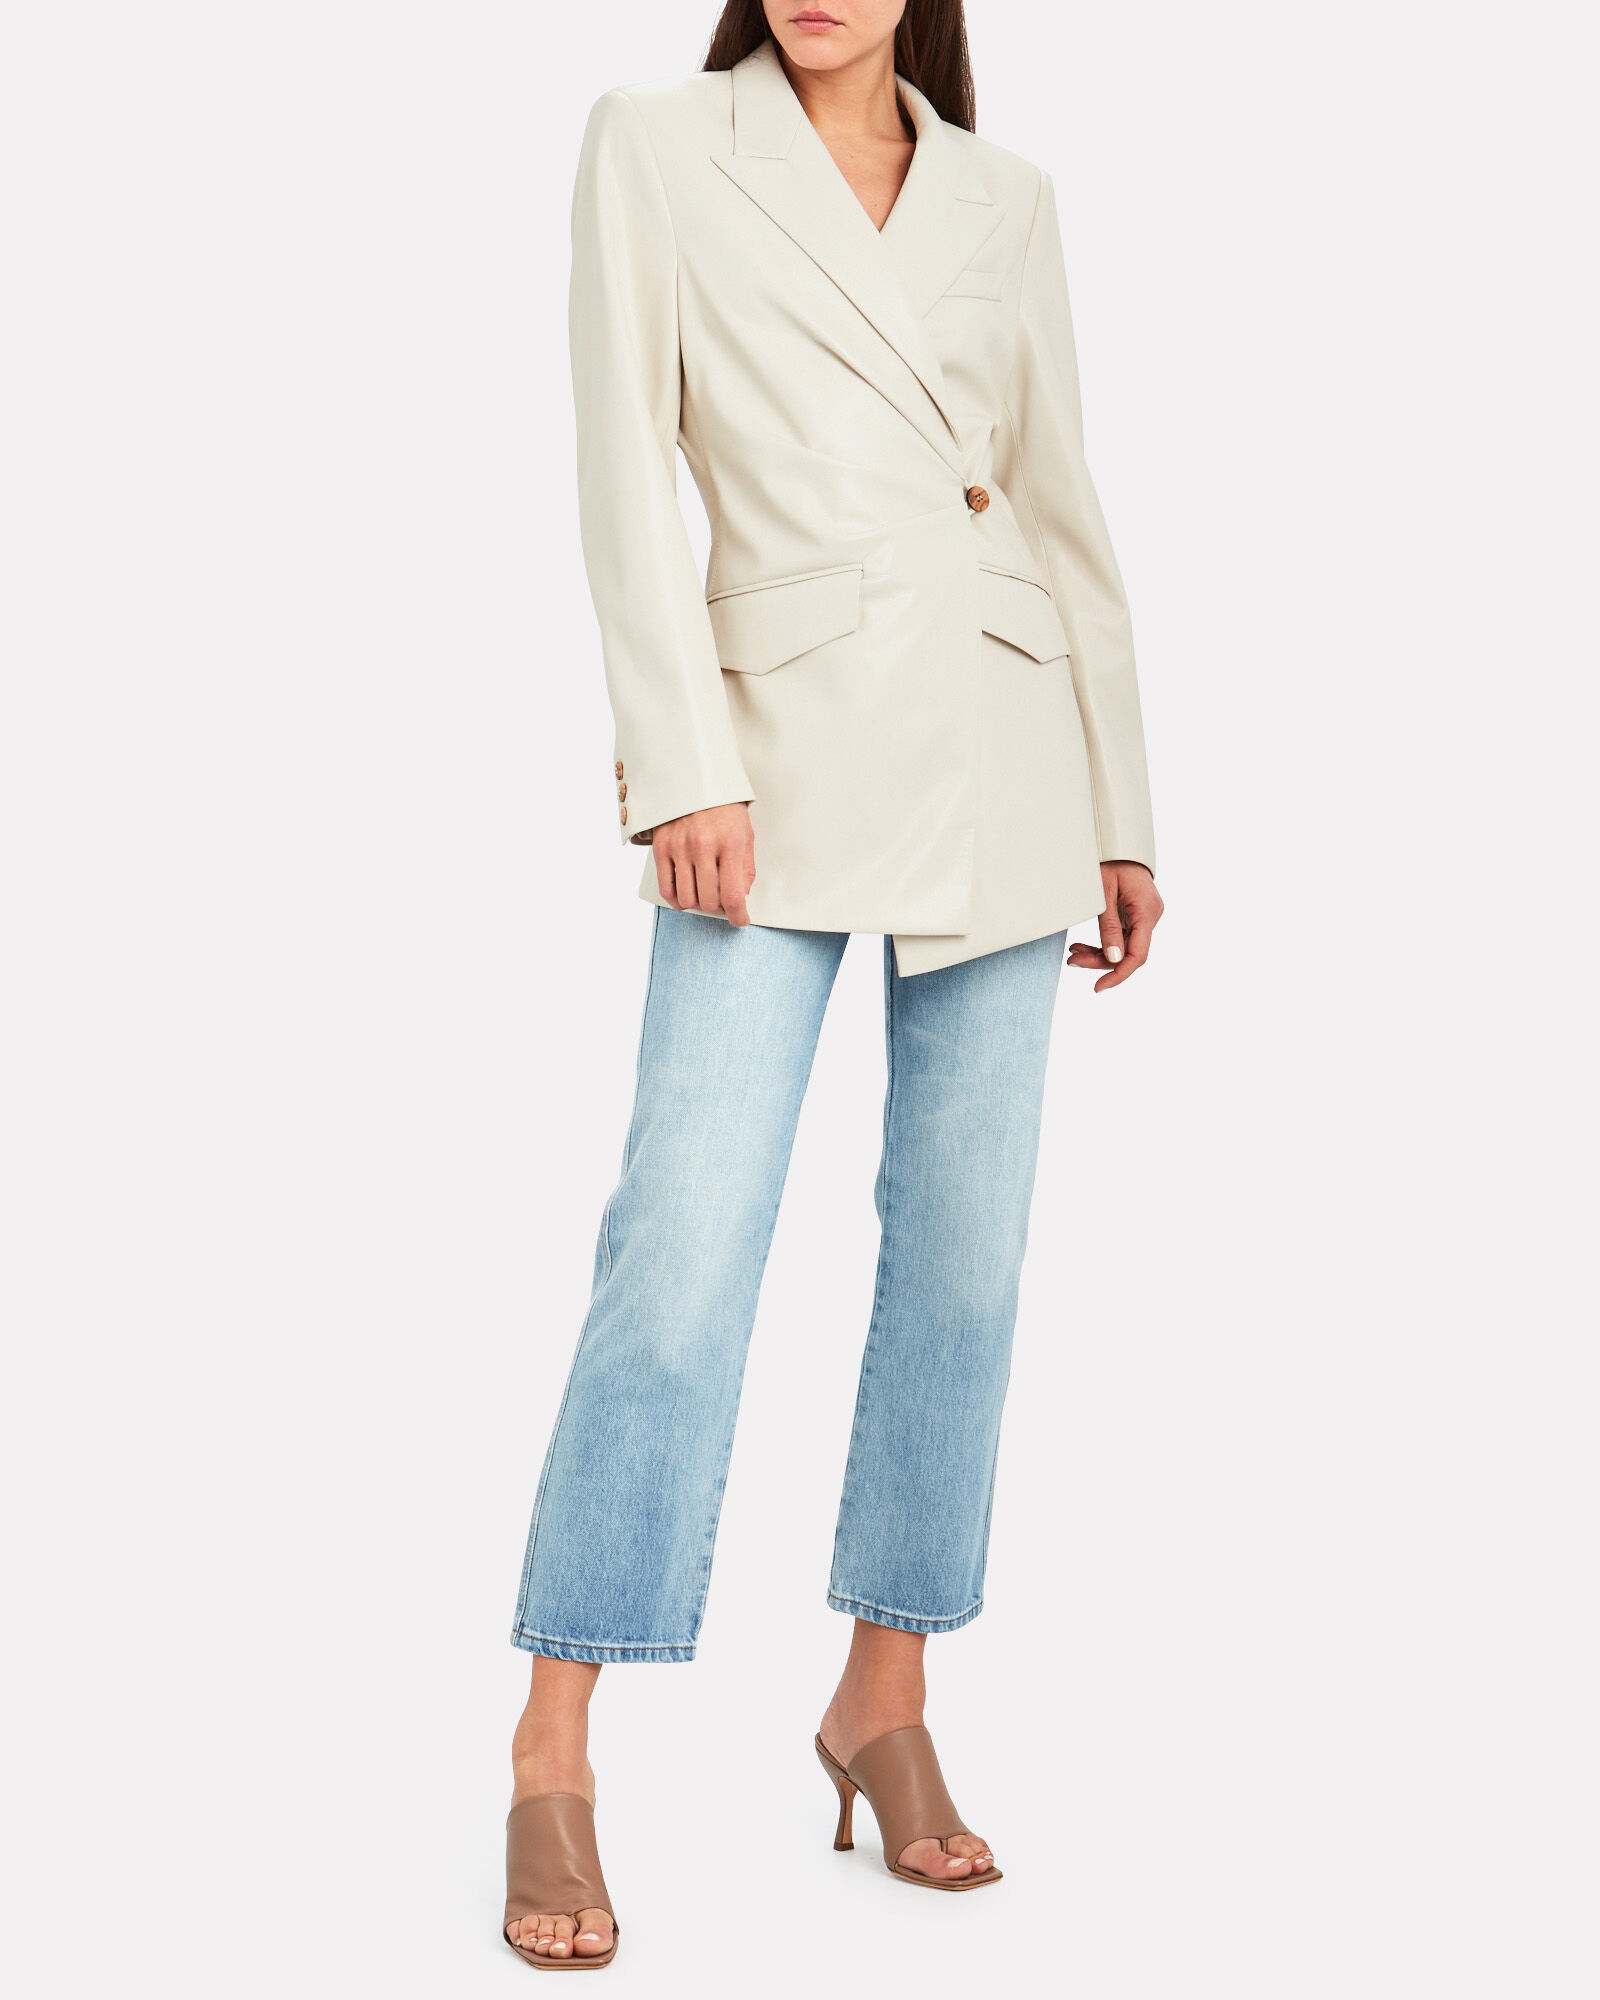 Blair Vegan Leather Blazer, IVORY, hi-res